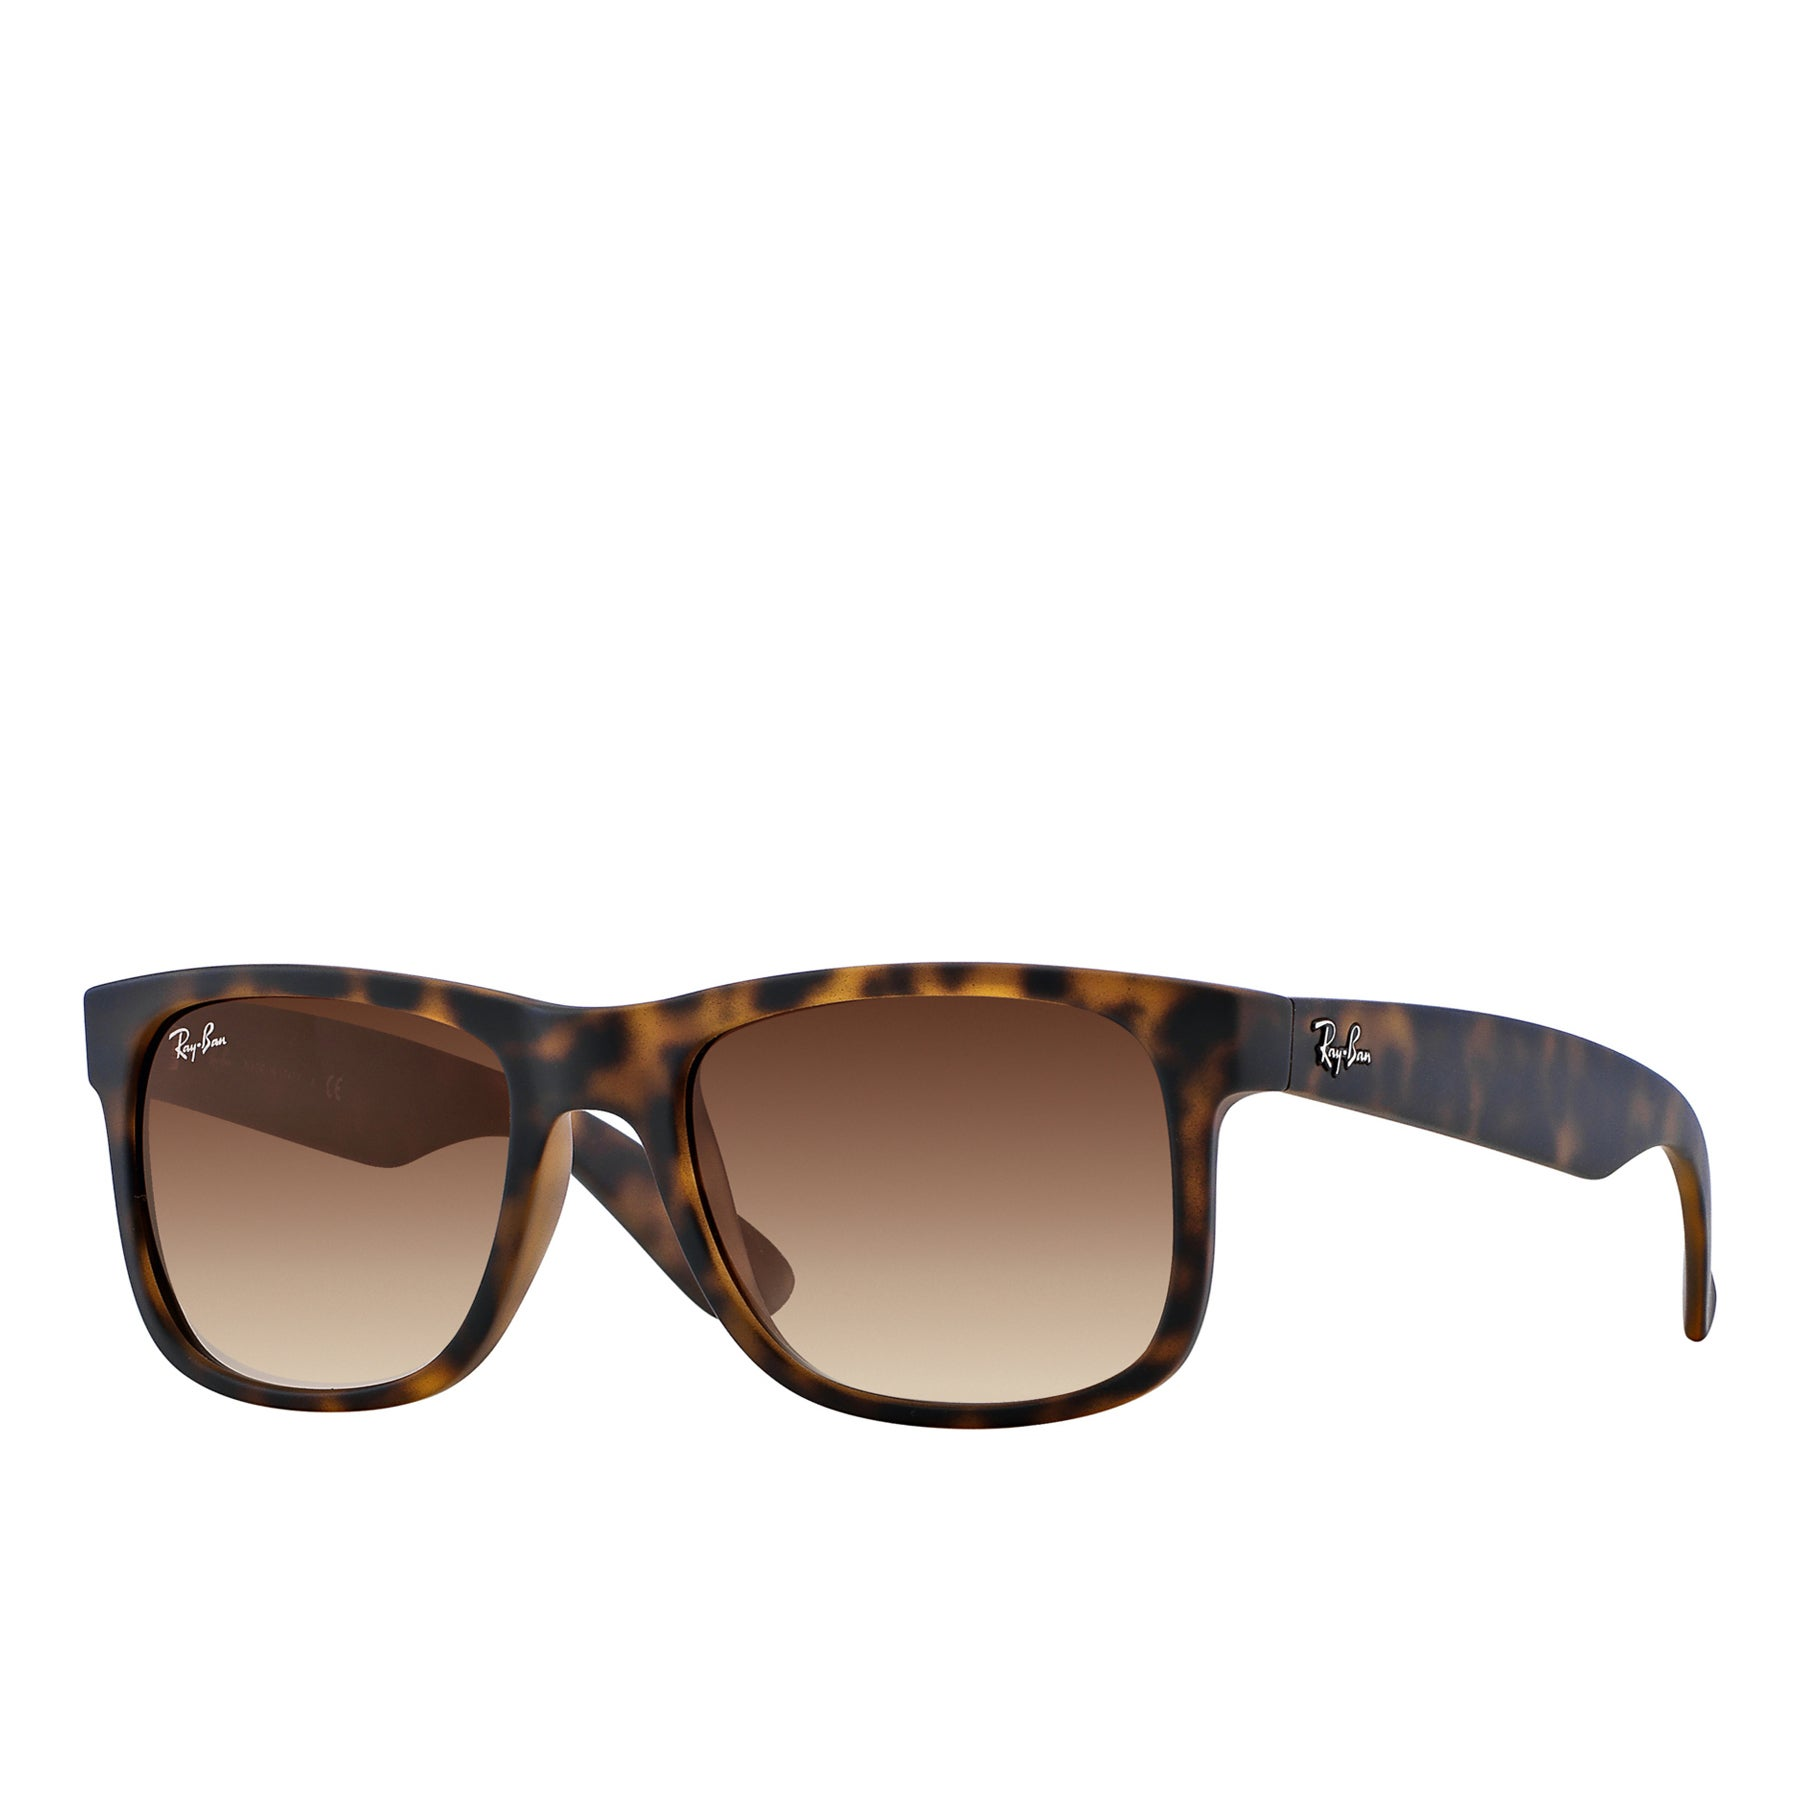 Ray-Ban Justin Wayfarer Sunglasses - Tortoise Brown